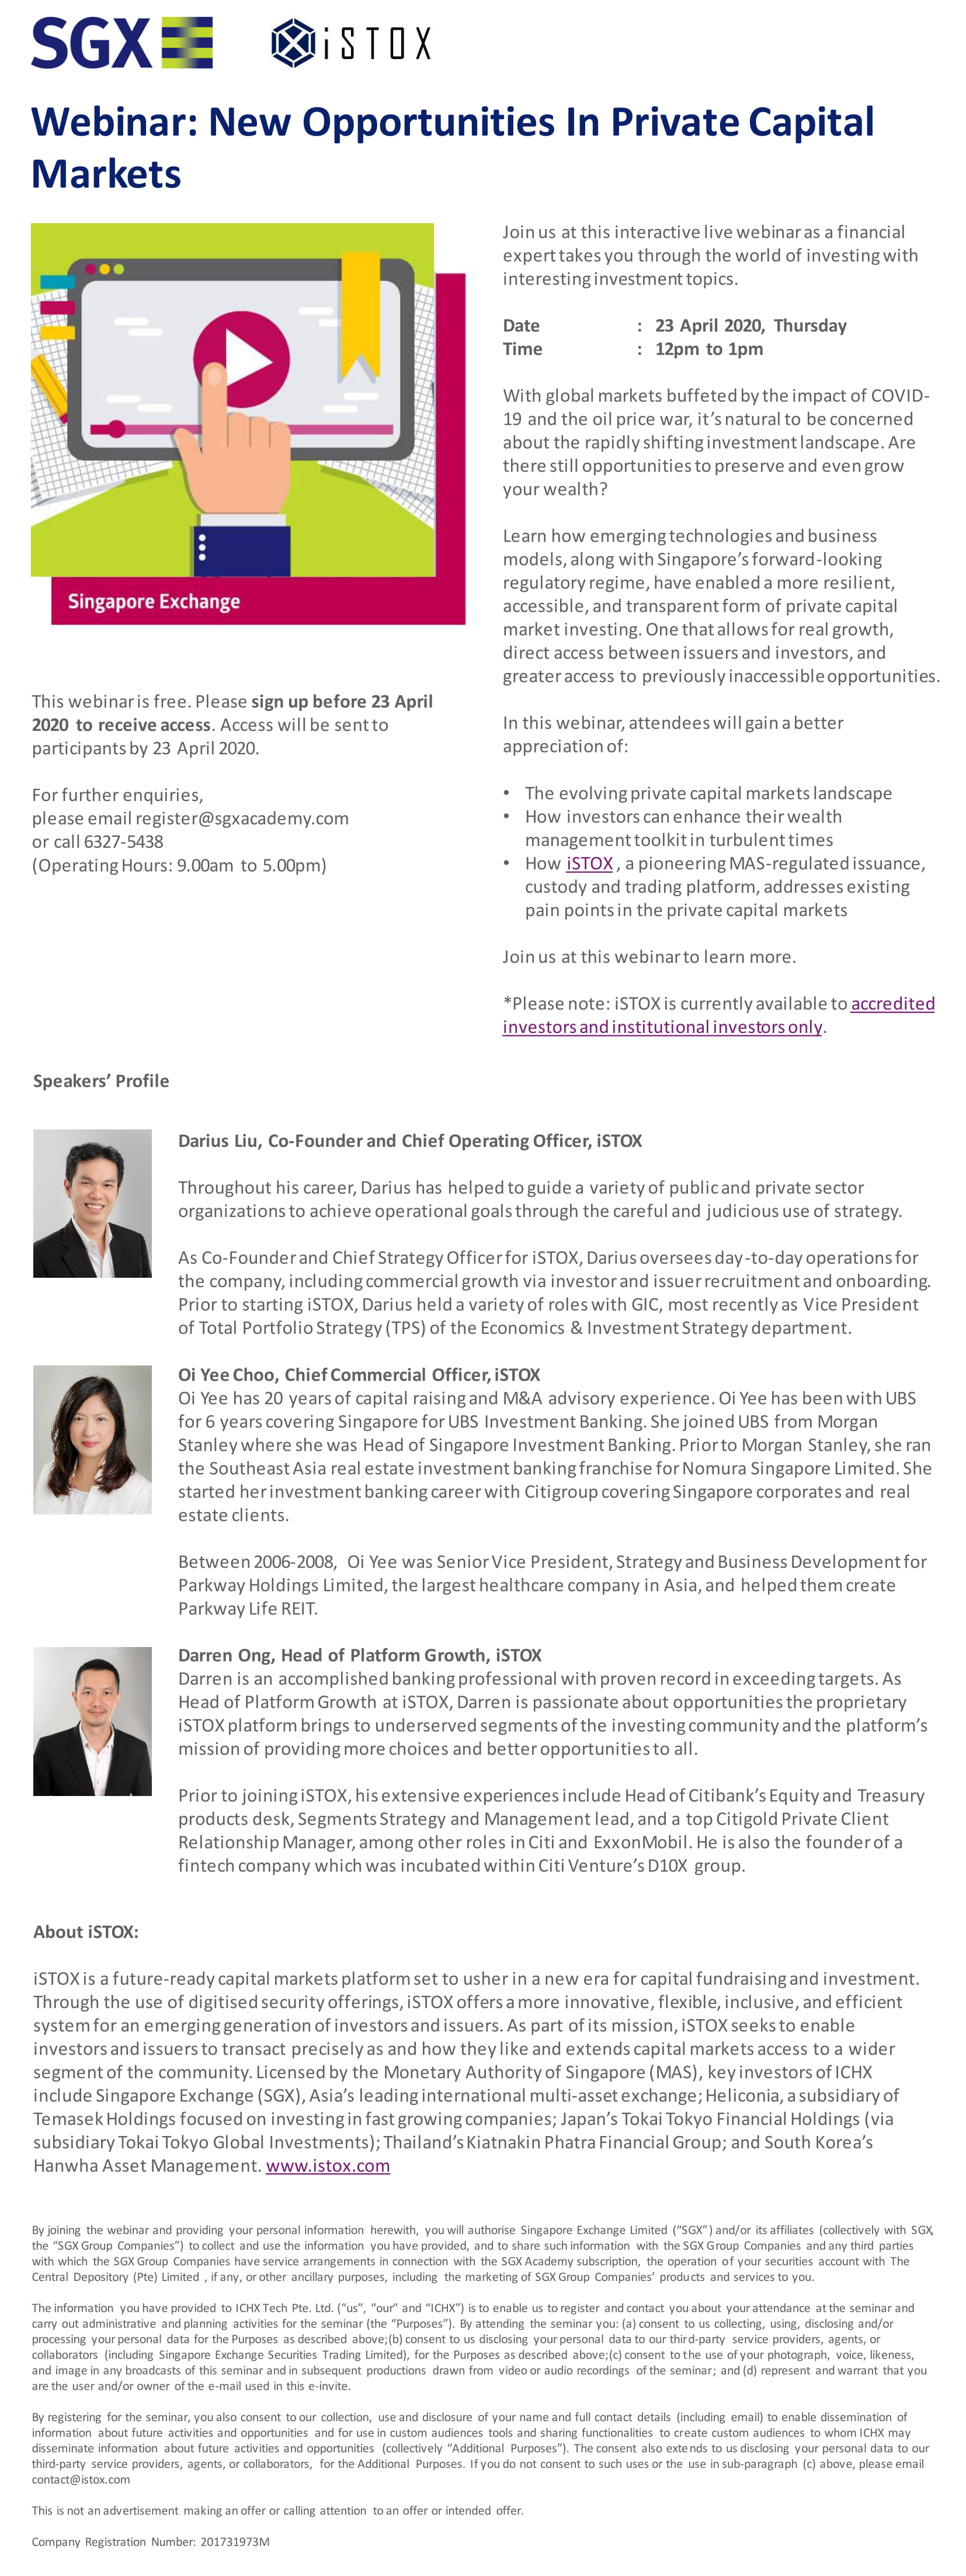 Webinar: New Opportunities In Private Capital Markets